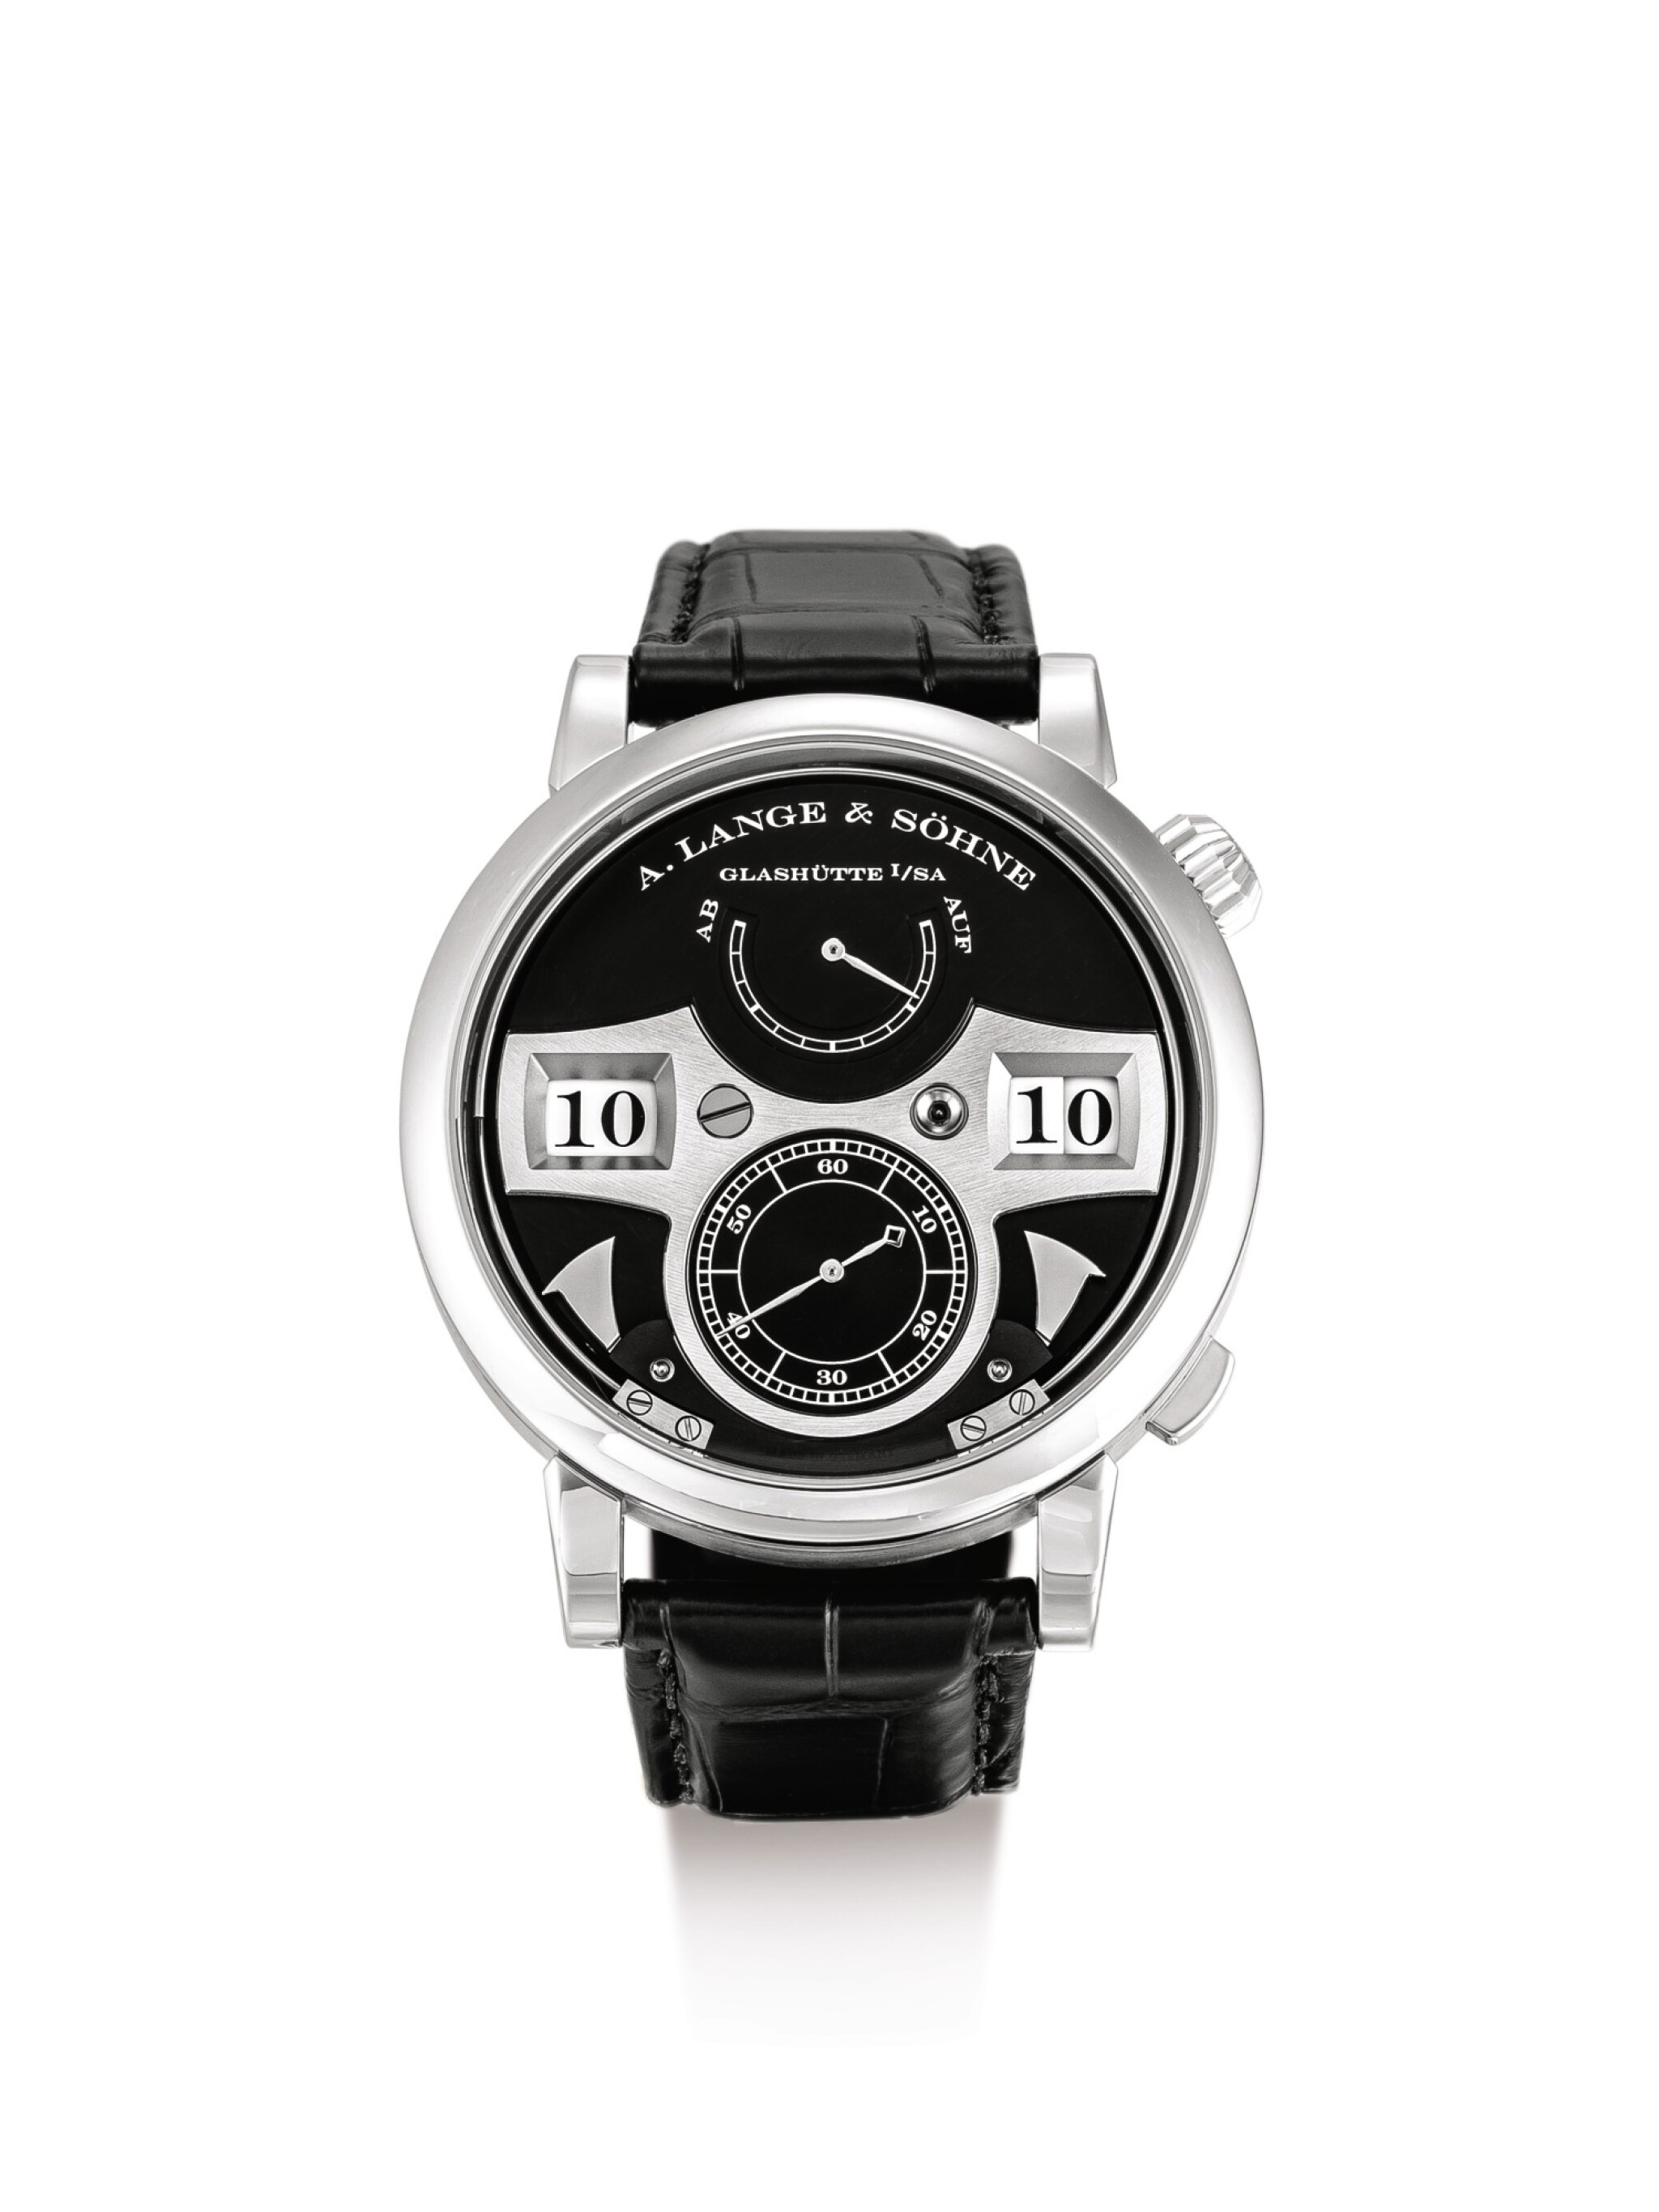 """View 1 of Lot 2074. A. LANGE & SÖHNE   ZEITWERK STRIKING TIME, A WHITE GOLD WRISTWATCH WITH DIGITAL DISPLAY, STRIKING TIME AND POWER RESERVE INDICATION, CIRCA 2010   朗格   """"Zeitwerk Striking Time 白金腕錶,備跳字、打問報時及動力儲備顯示,機芯編號91060,錶殼編號201171,約2010年製""""."""